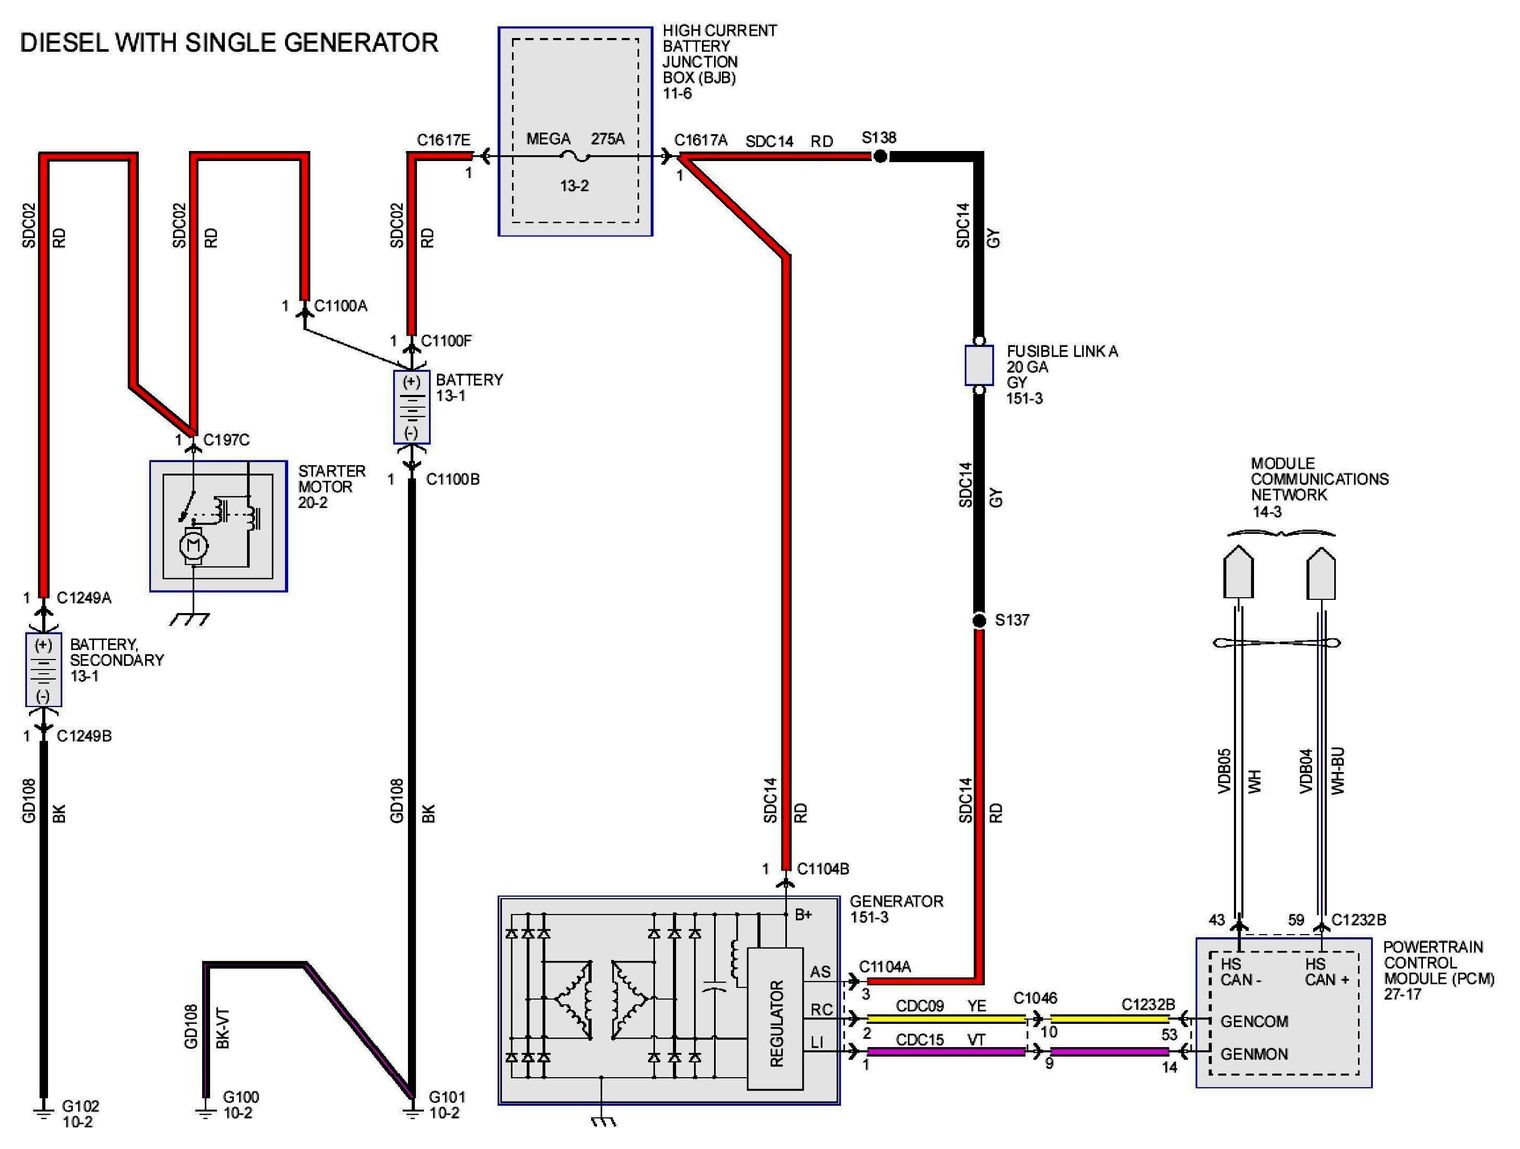 electrical wire diagram honda ch 250 with Ford F 250 Kes Diagram on 2007 Honda Vt750c Wiring Diagram as well Honda Mb5 Wiring Diagram likewise Ford F 250 Kes Diagram as well Car Wiring Diagram For Honda Beat in addition Honda Wave 110 Wiring Diagram.